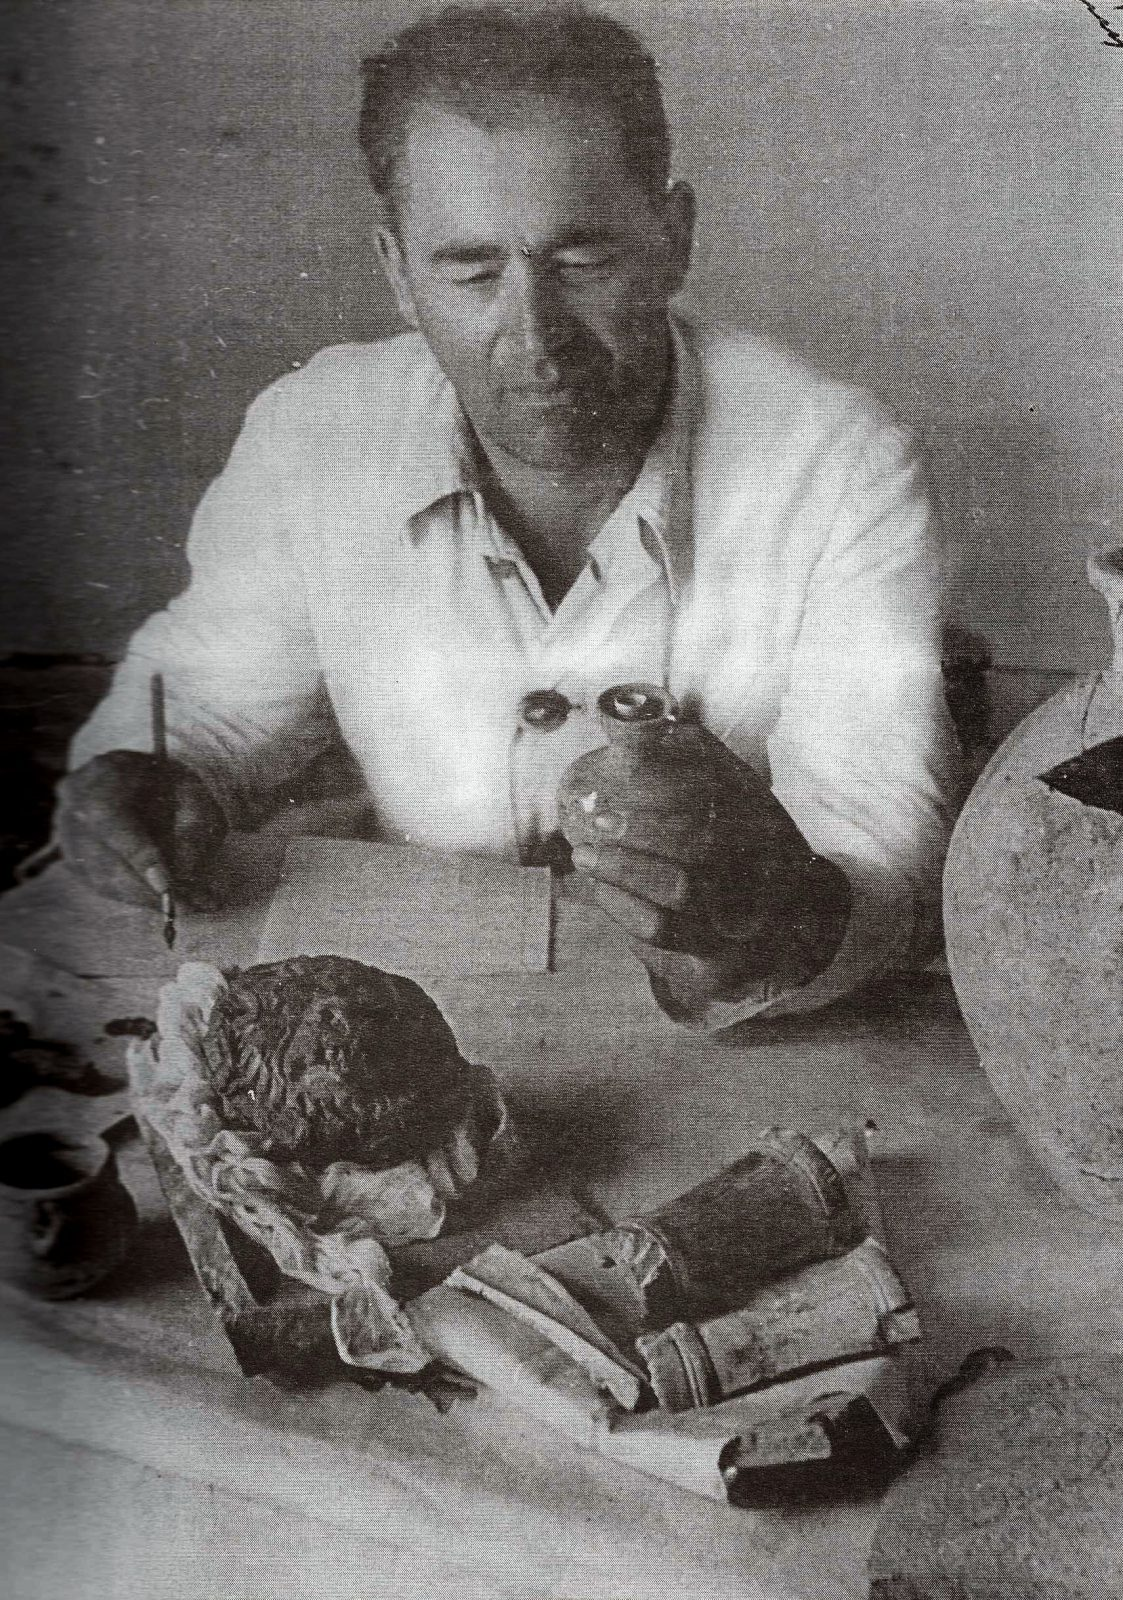 In this photograph, Russian archaeologist Aleksandr M. Belenitsky sits at his work table, examining finds at Panjikent, Tajikistan (in ancient Sogdiana), 1952.